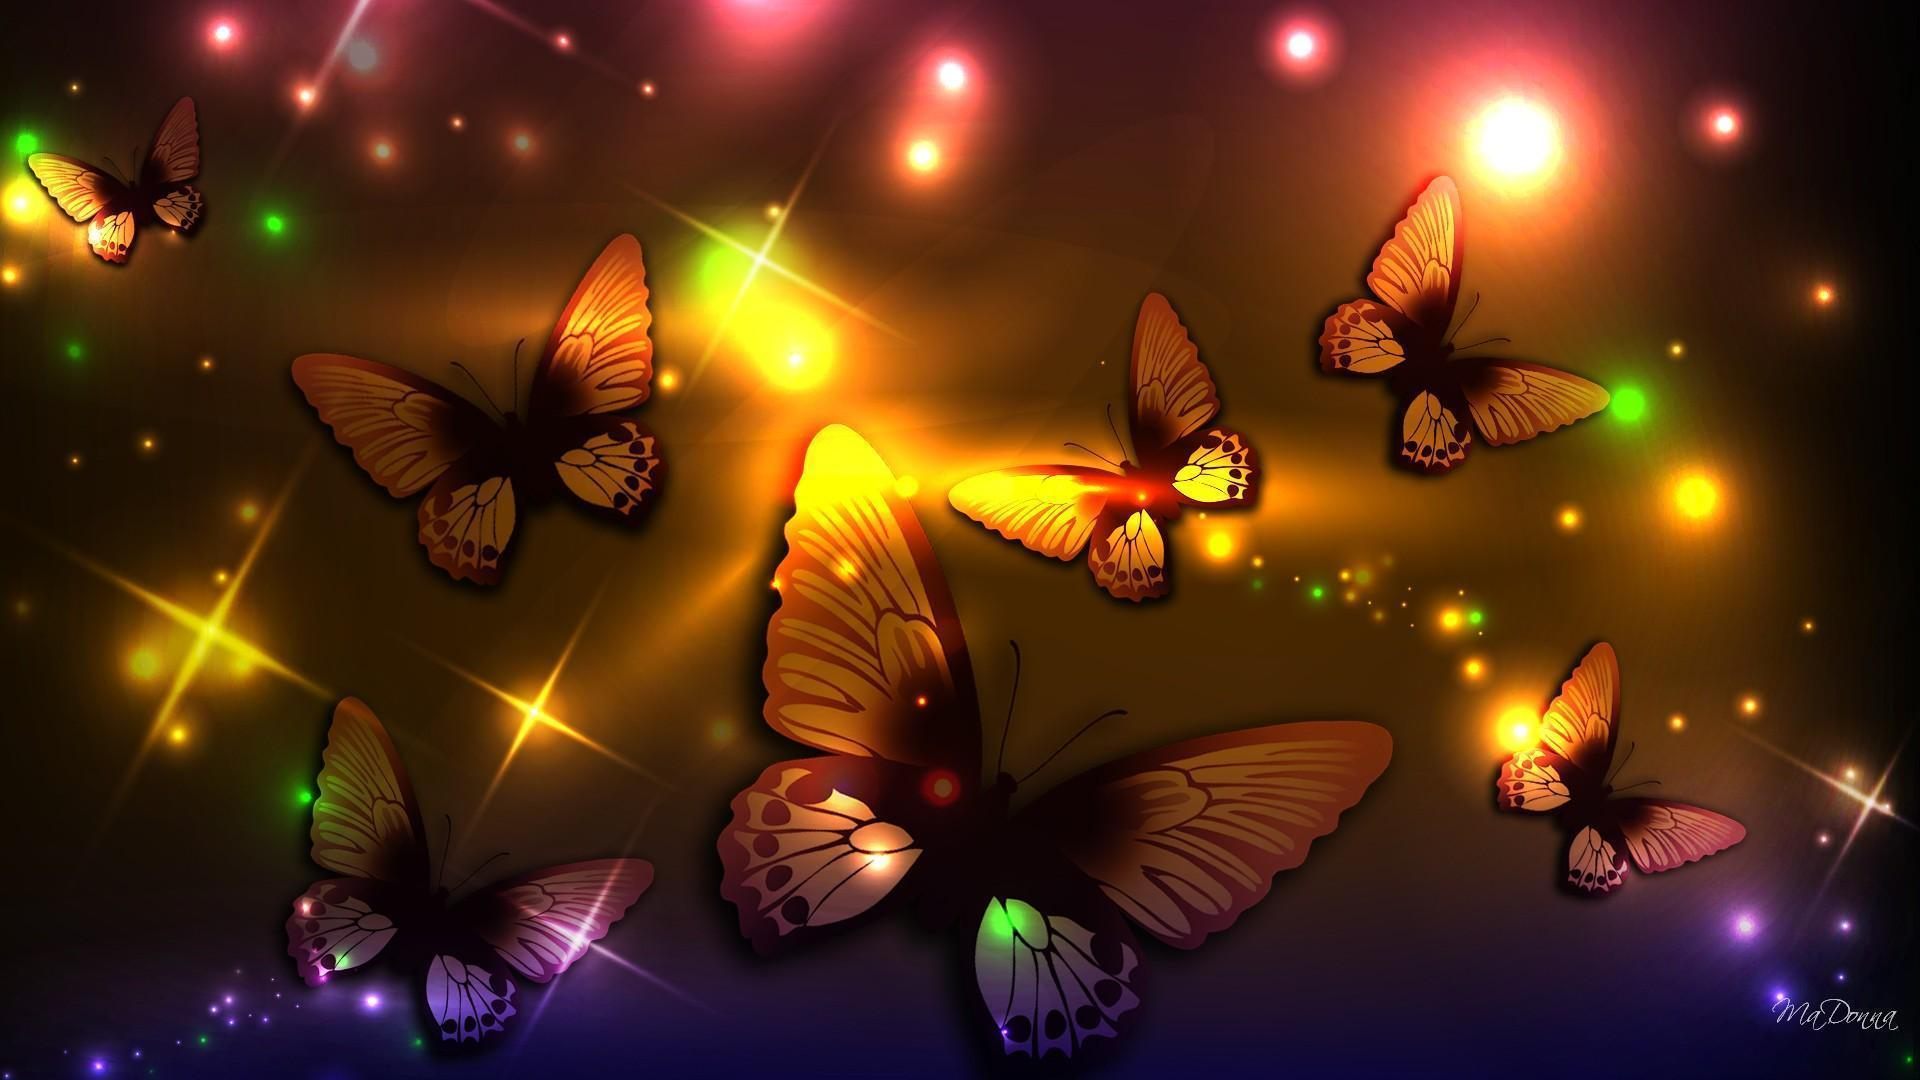 butterfly wallpaper high - photo #49